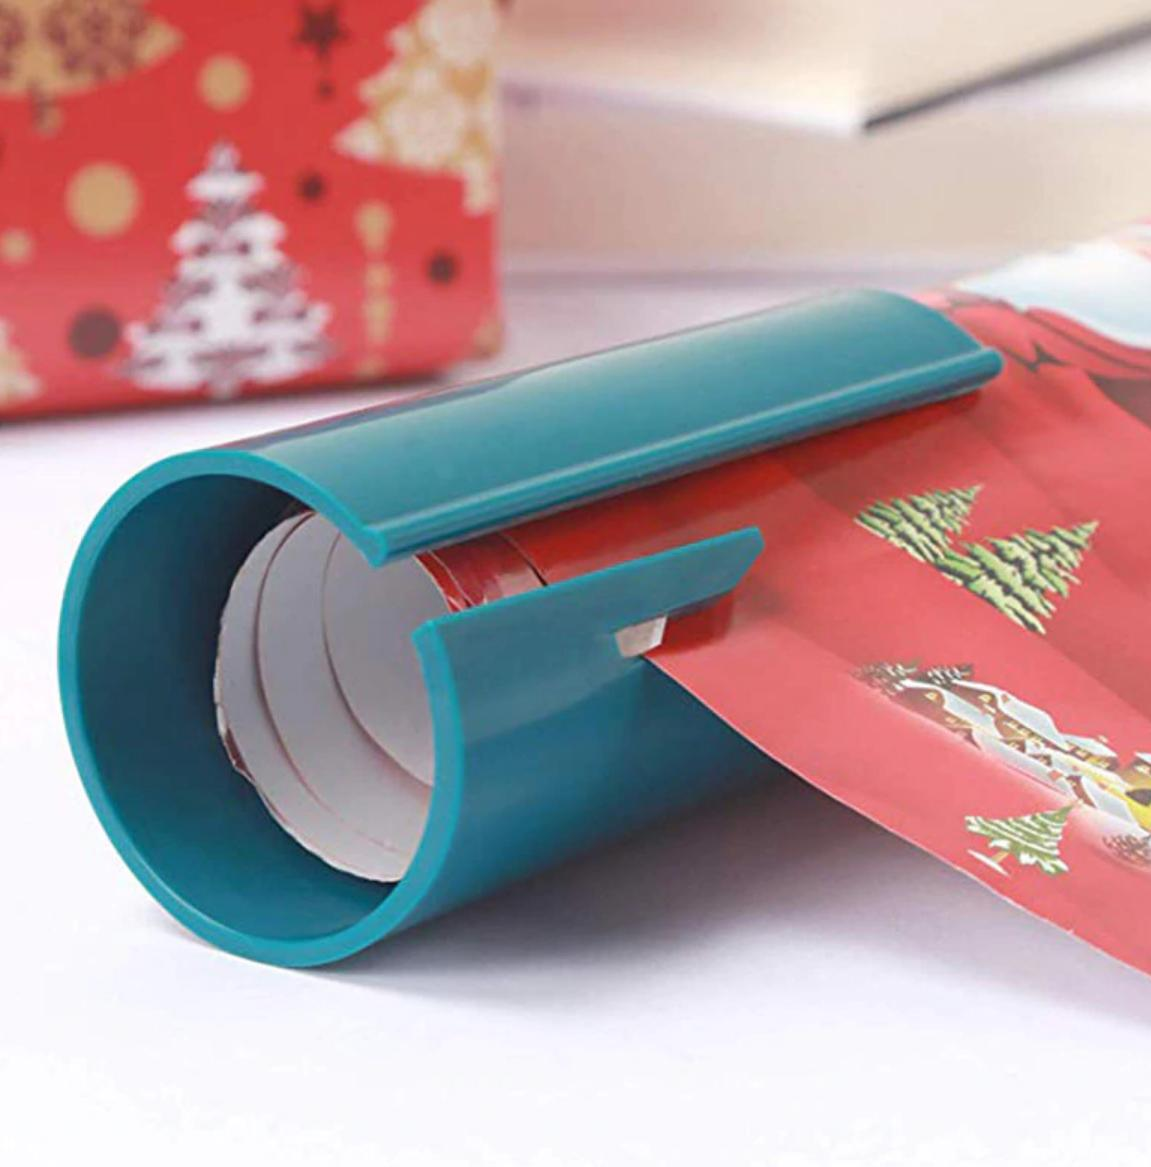 2 Little Style Cutting Wrapping Paper Tool